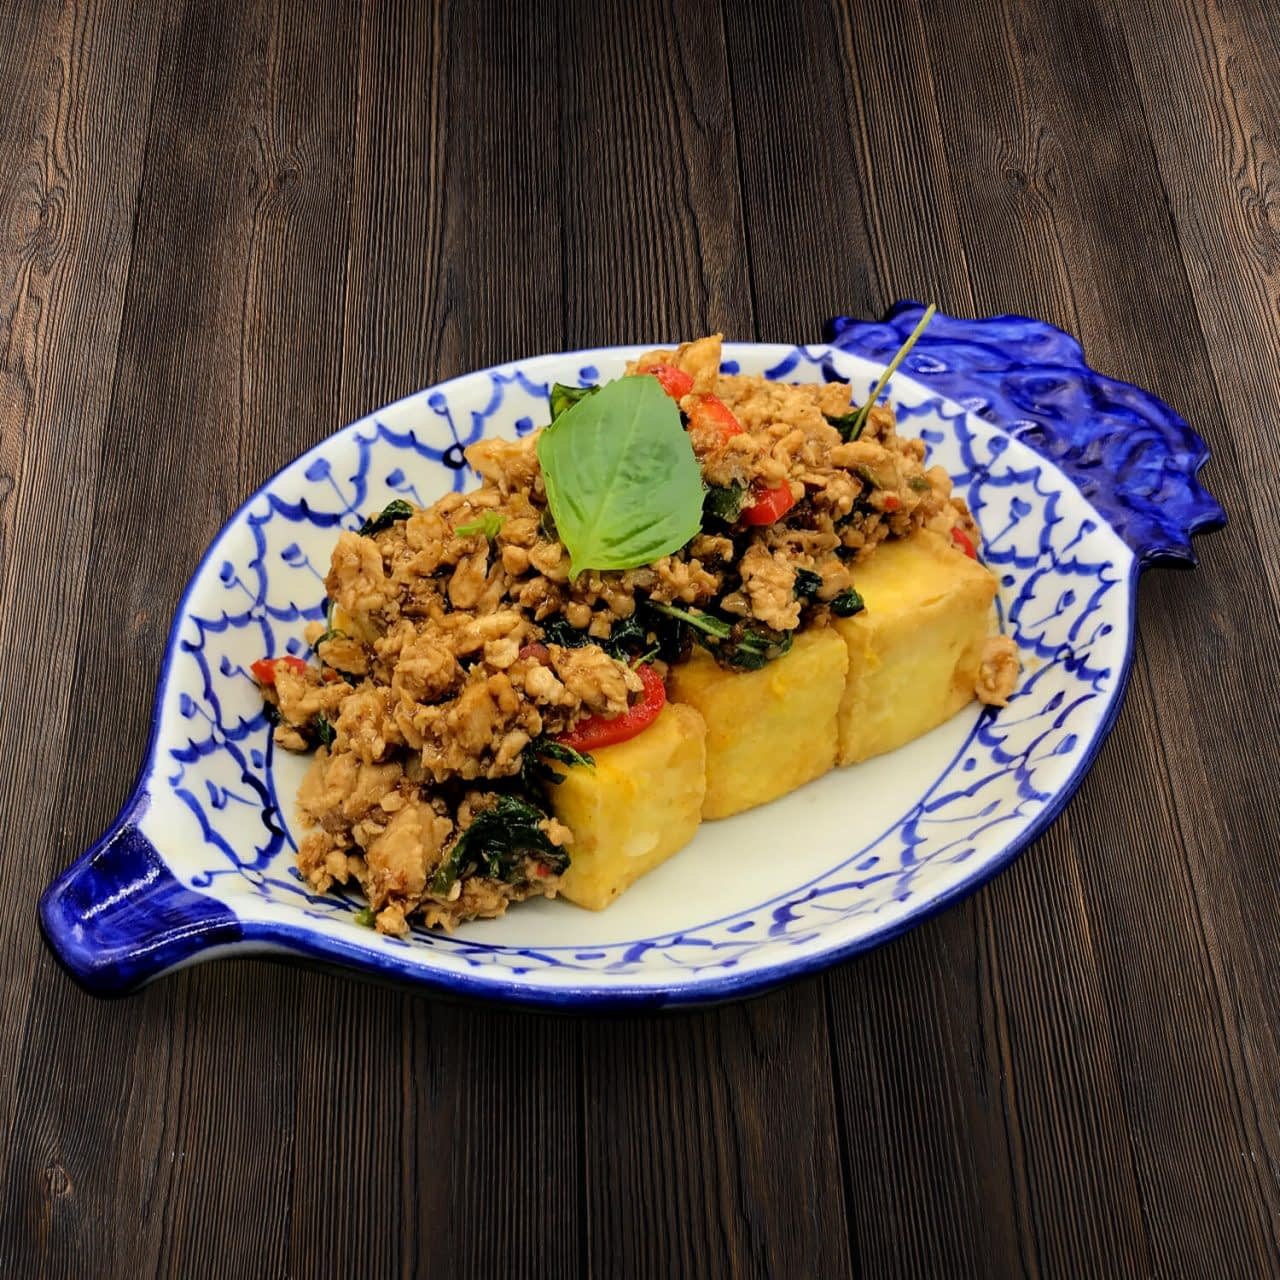 thai food near me delivery - Thai Food Delivery KL Klang Valley